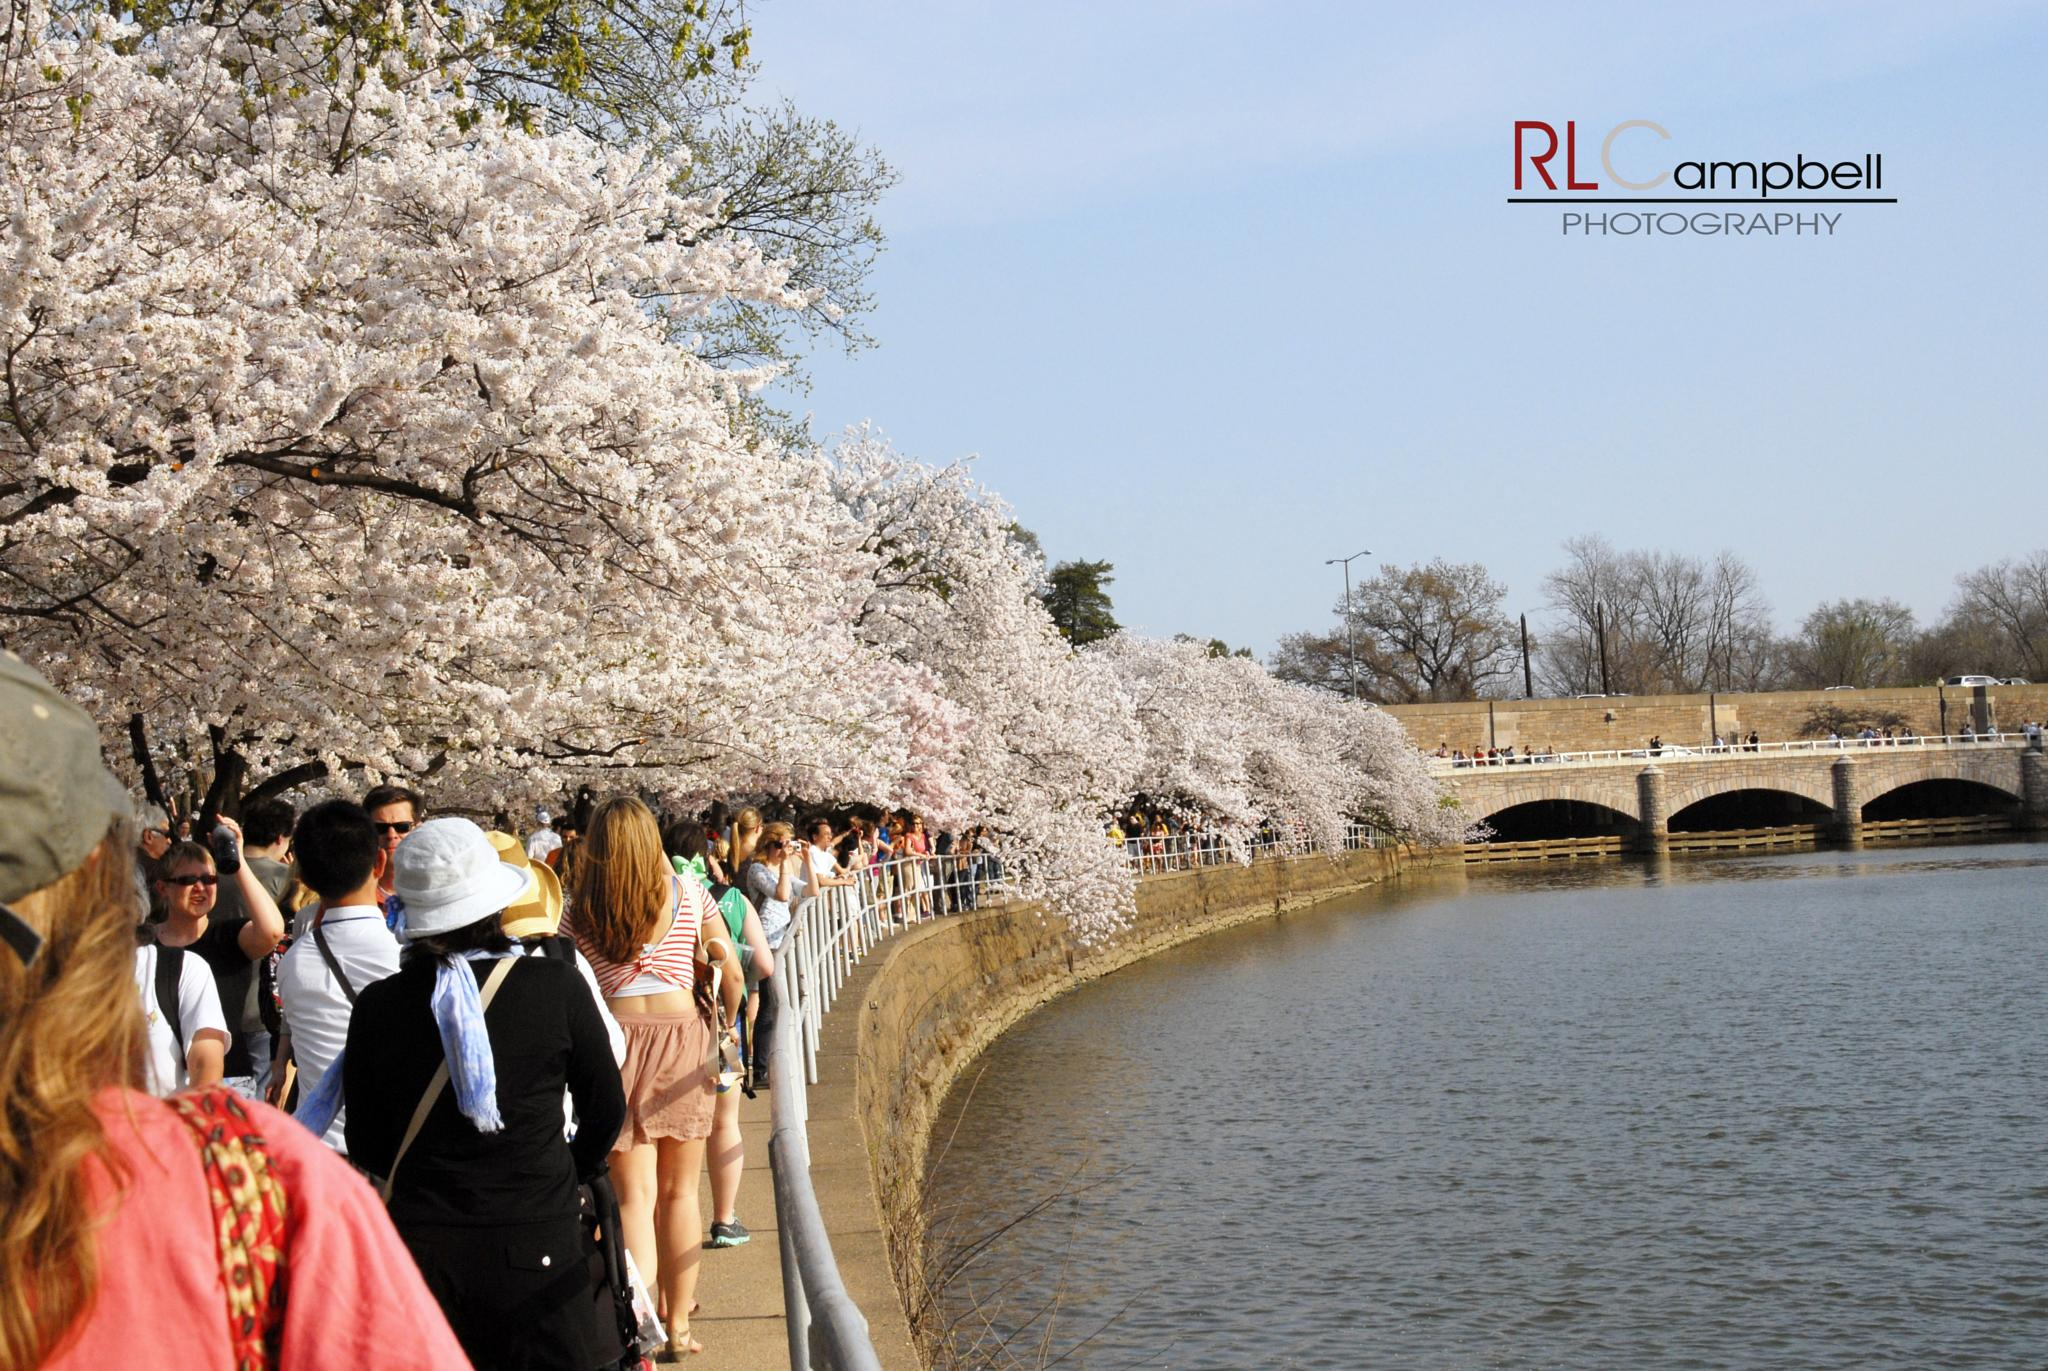 Cherry Blossoms by rlcampbellphotography